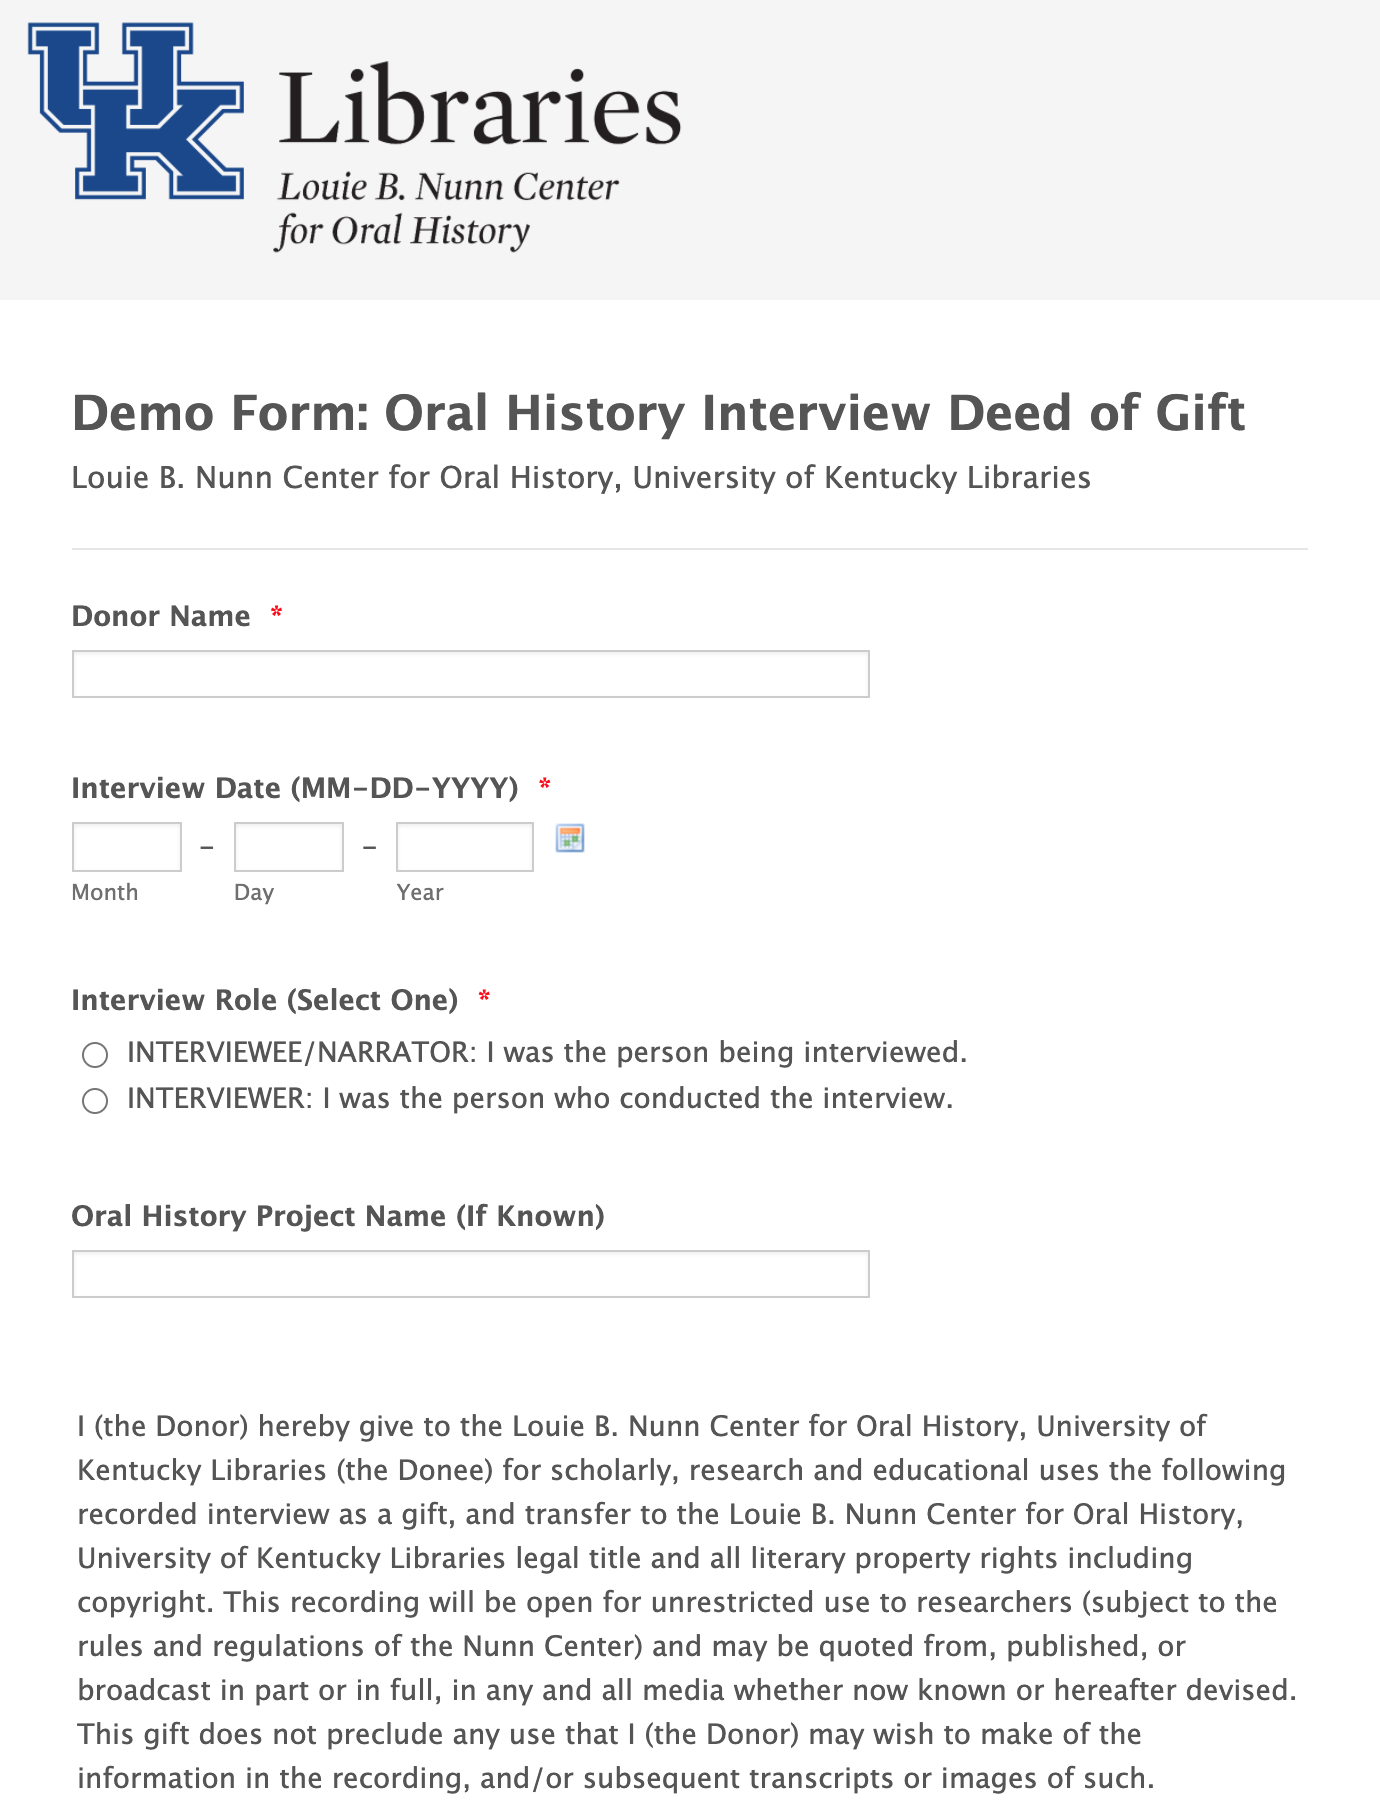 Demo Form Oral History Interview Deed of Gift